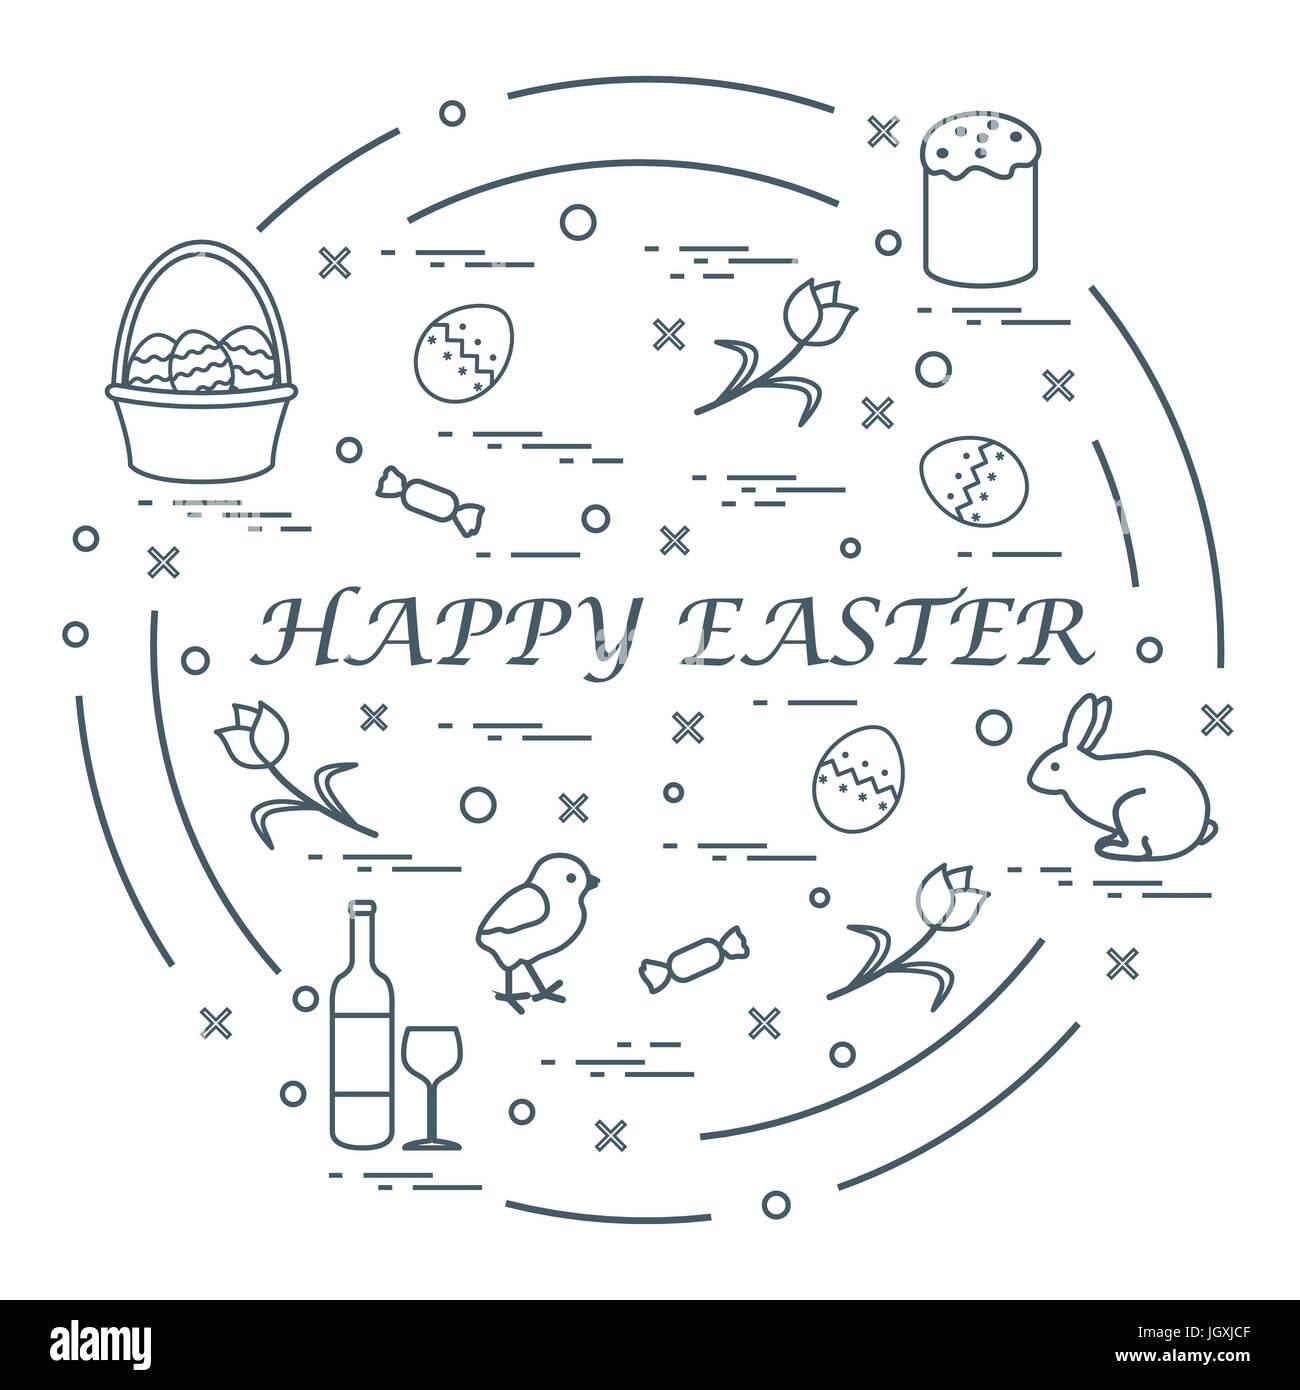 Cute vector illustration with different symbols for easter cute vector illustration with different symbols for easter arranged in a circle including icons of easter cake chick baskets eggs and other desig buycottarizona